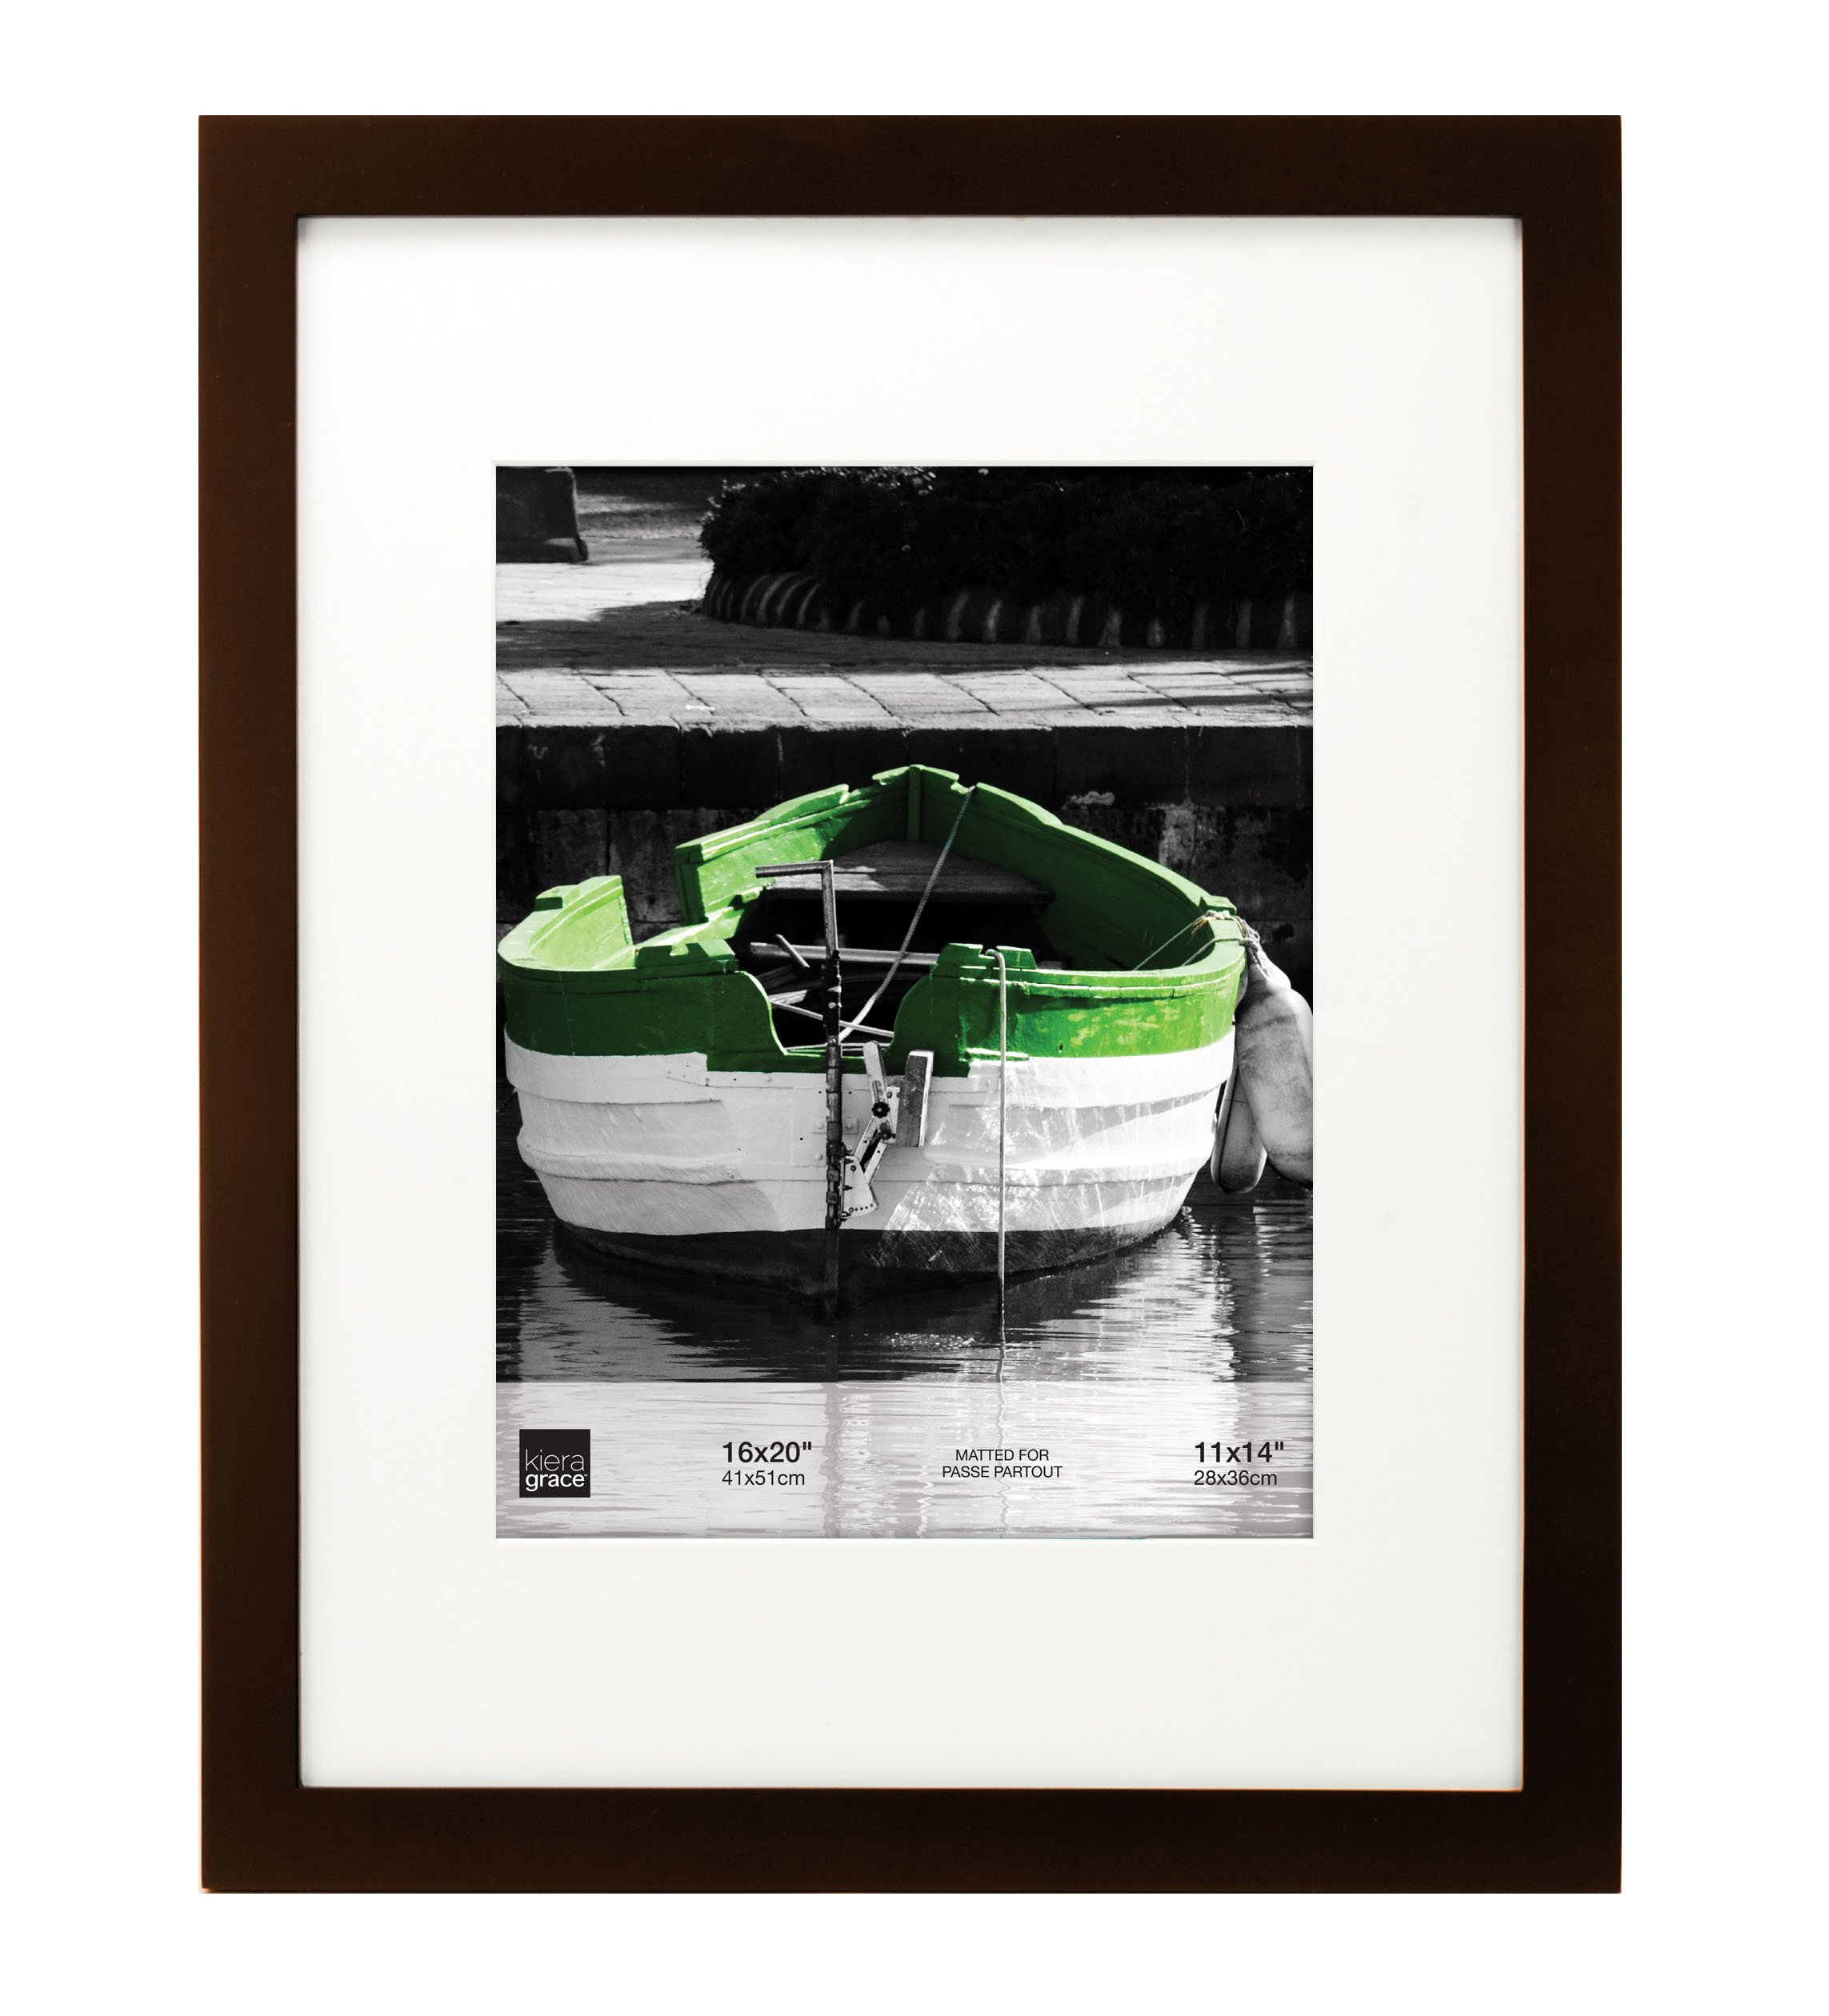 kieragrace Langford Wood Picture Frame, 16 by 20 Inch Matted for 11 by 14 Inch Photo, Espresso